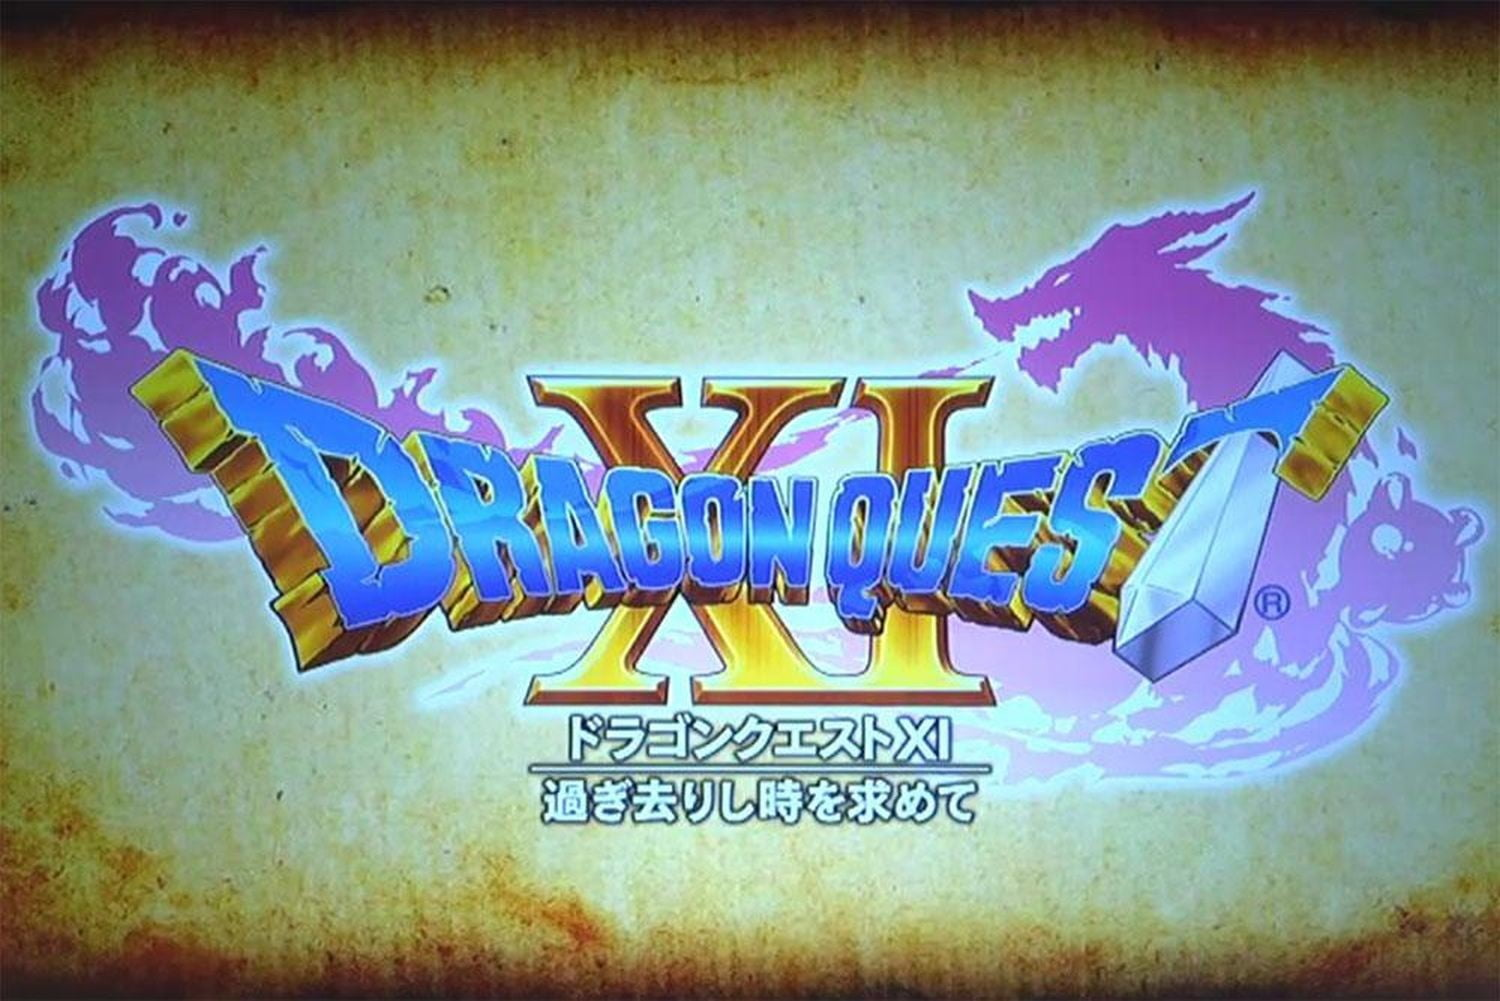 Https Gaming Mario Odysey Cappy Dark Souls Circuit Panic Android Games 365 Free Download Dragon Quest Xi Logo 2 1500x1001